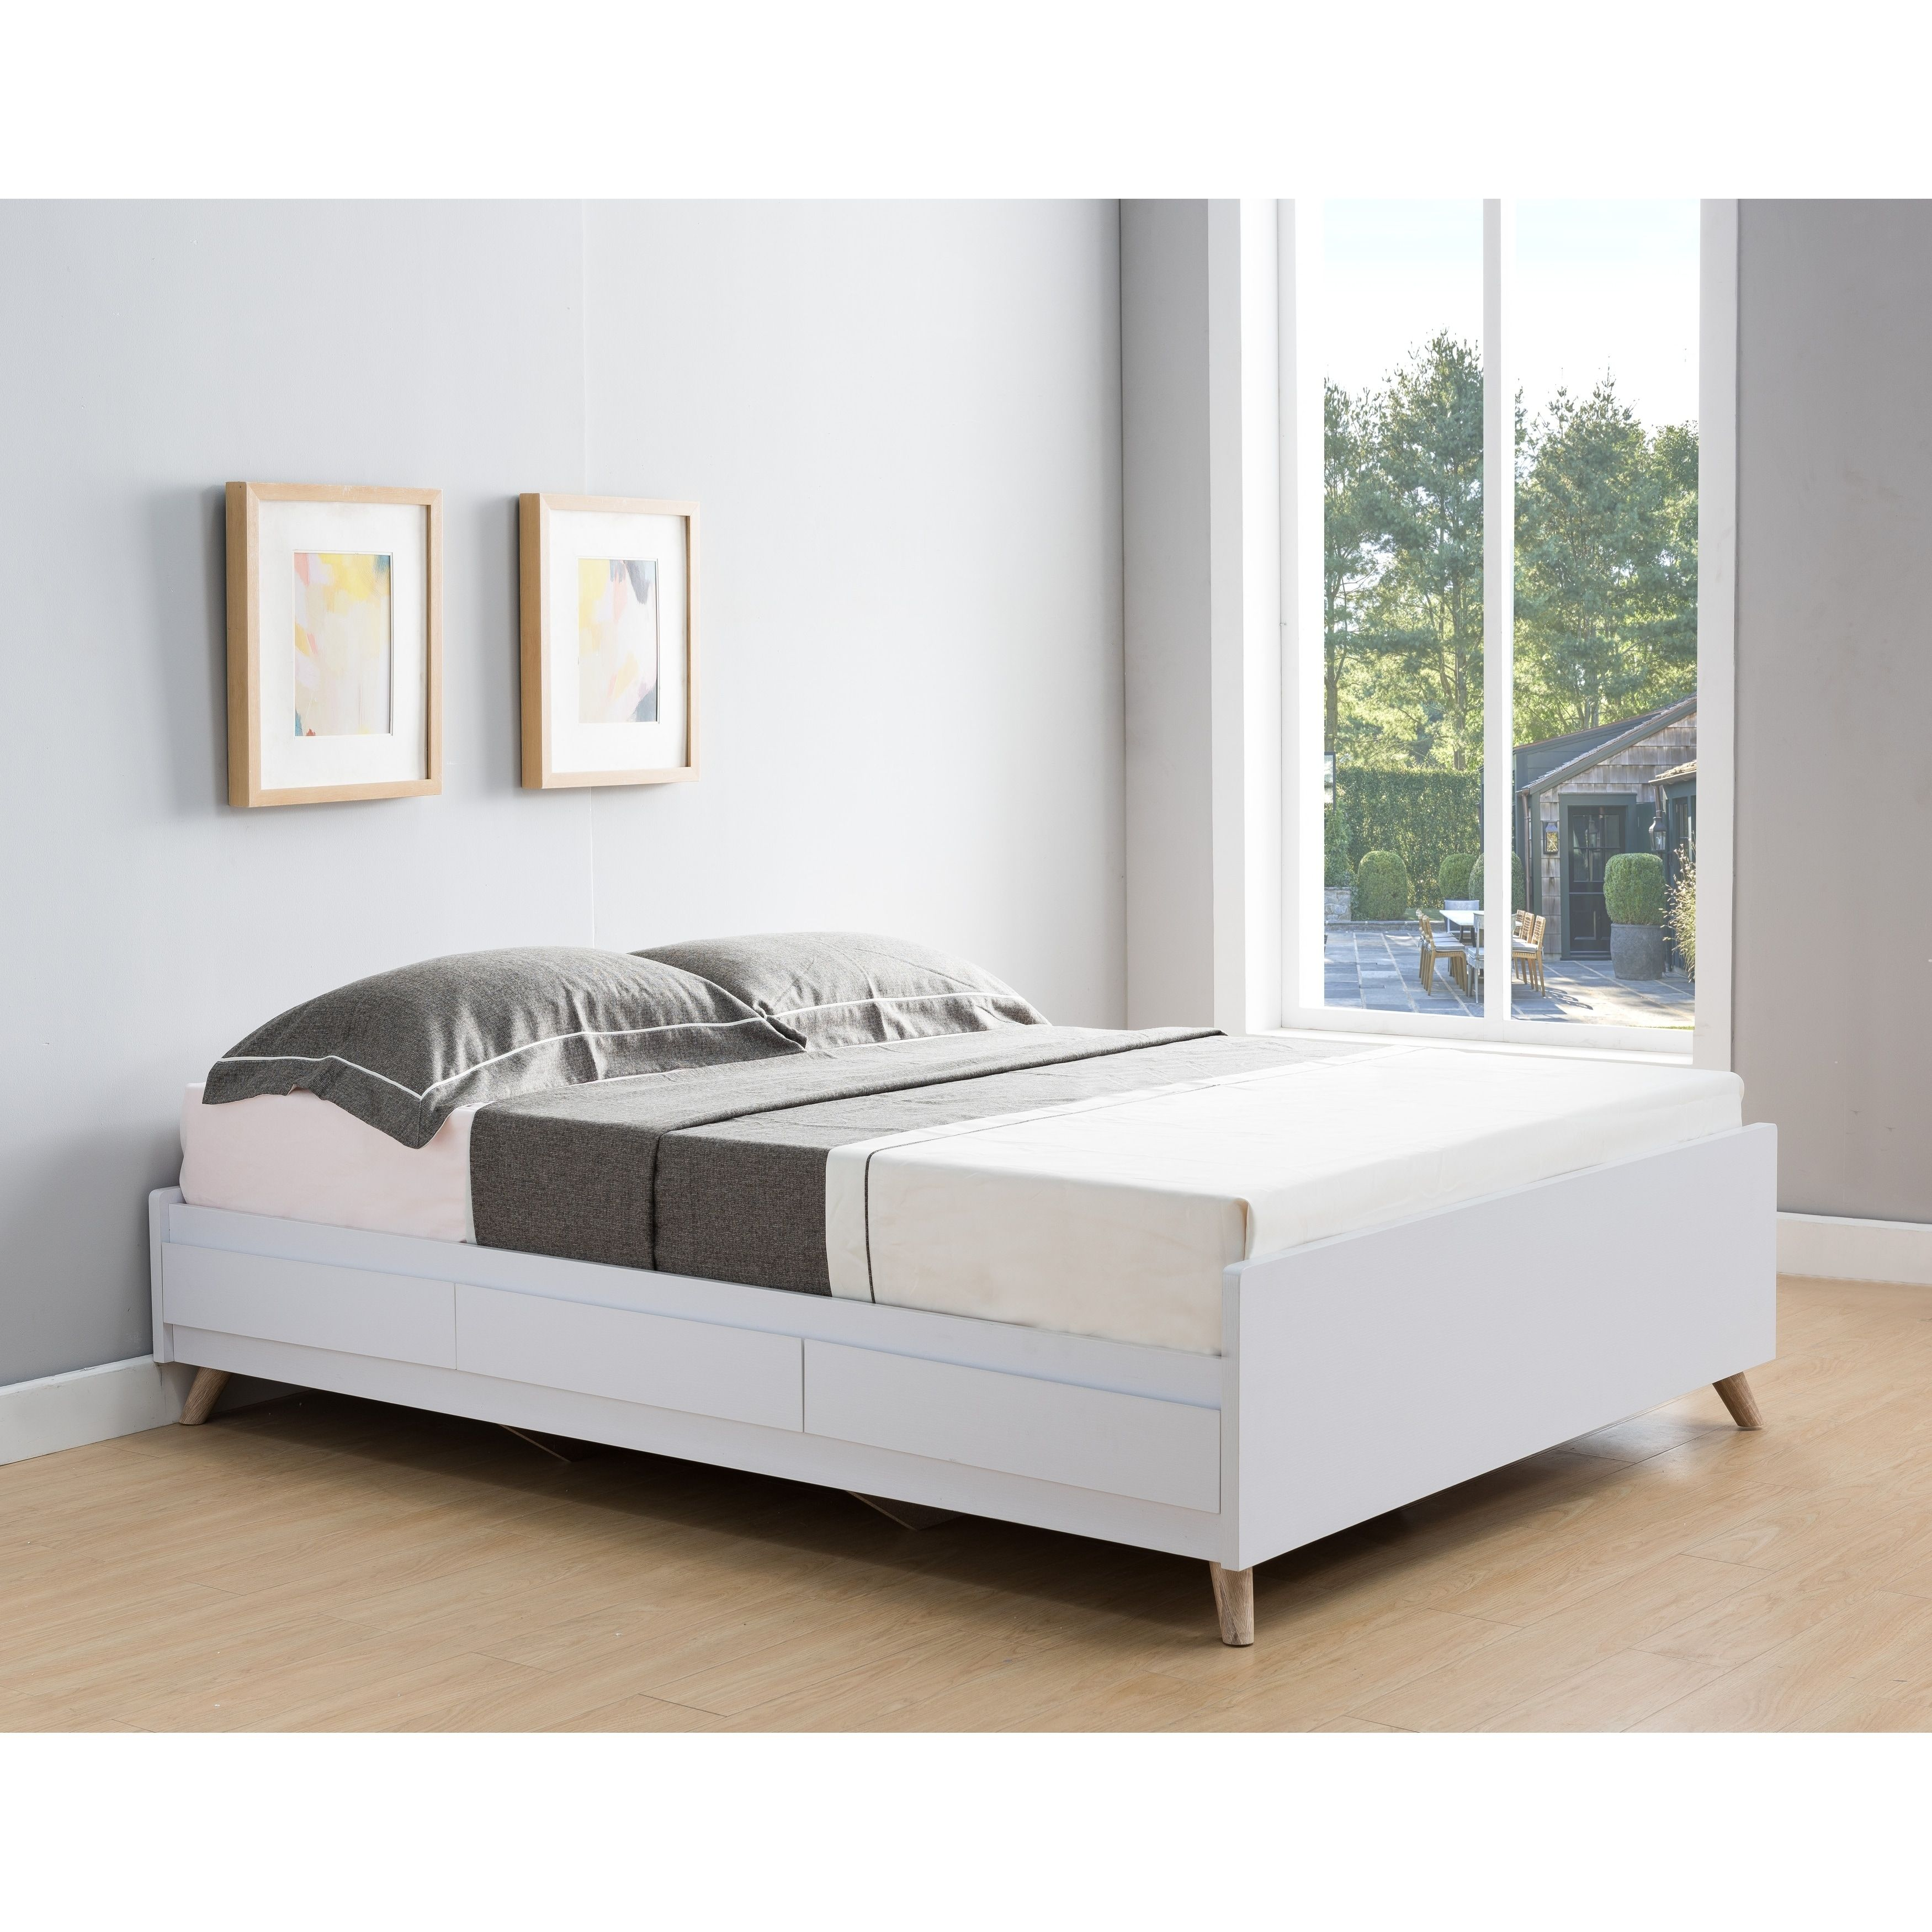 Online Shopping Bedding, Furniture, Electronics, Jewelry